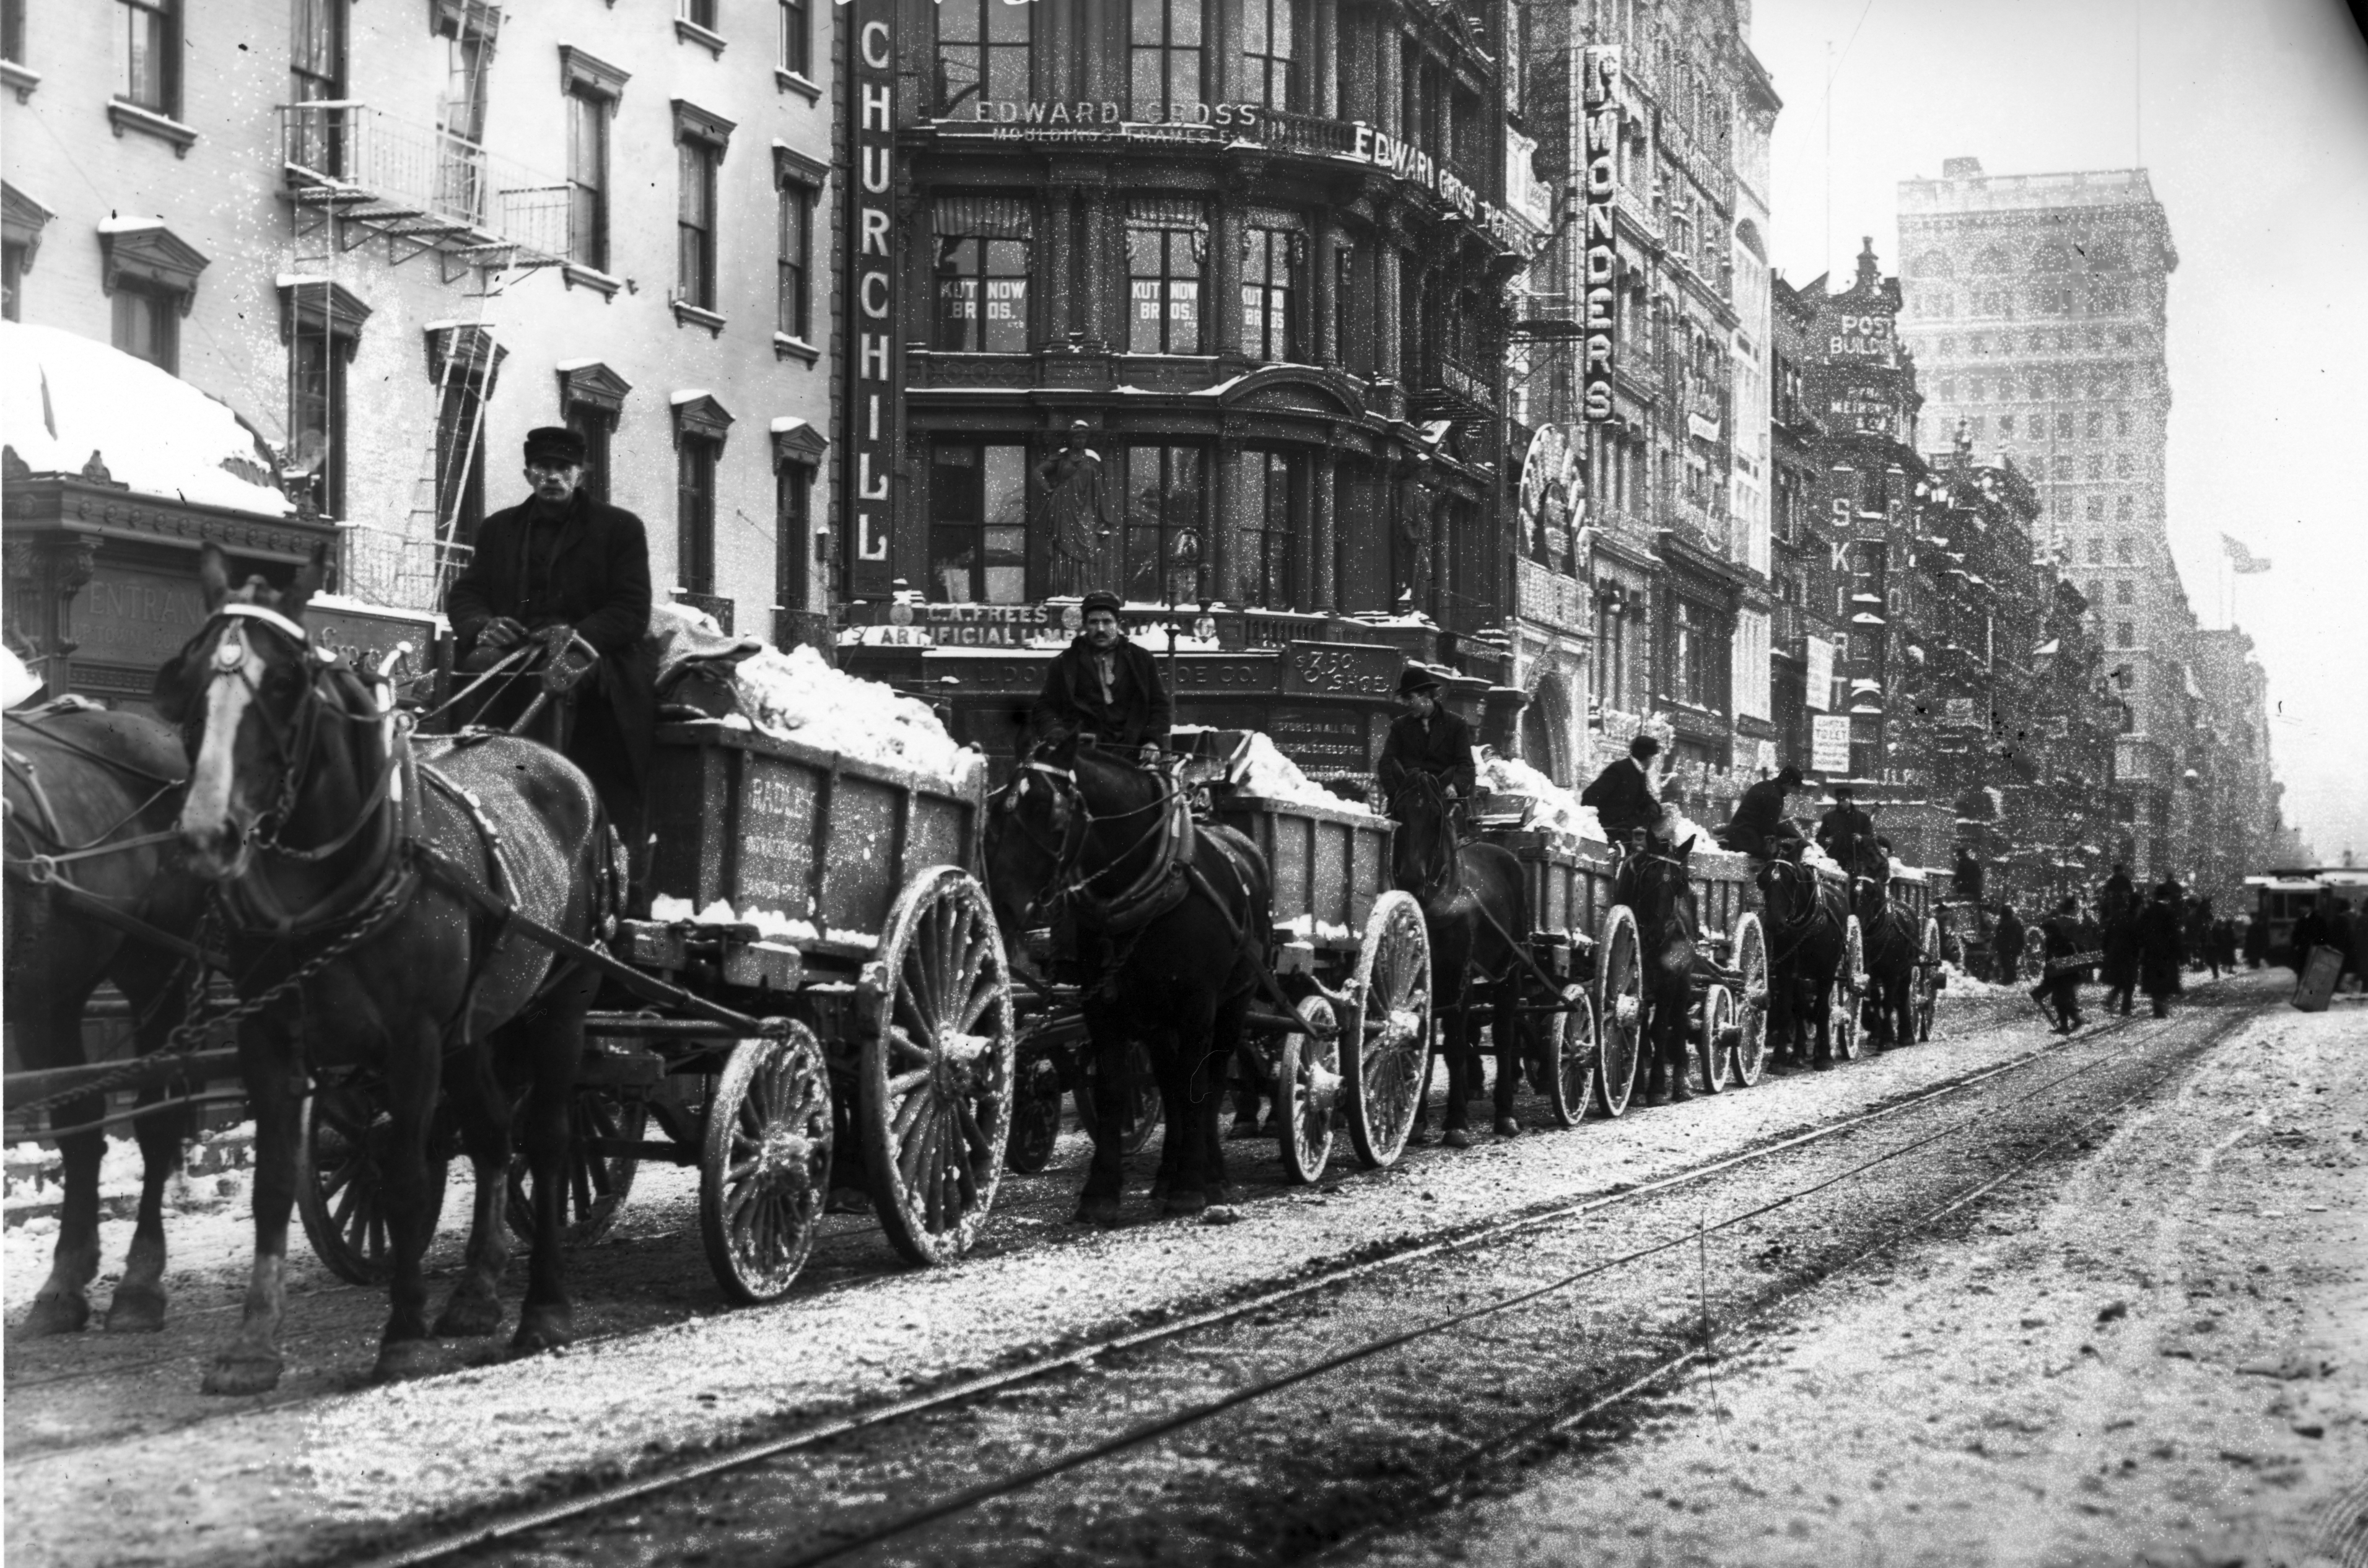 Old New York In Photos #35 - 1908 Snowstorm